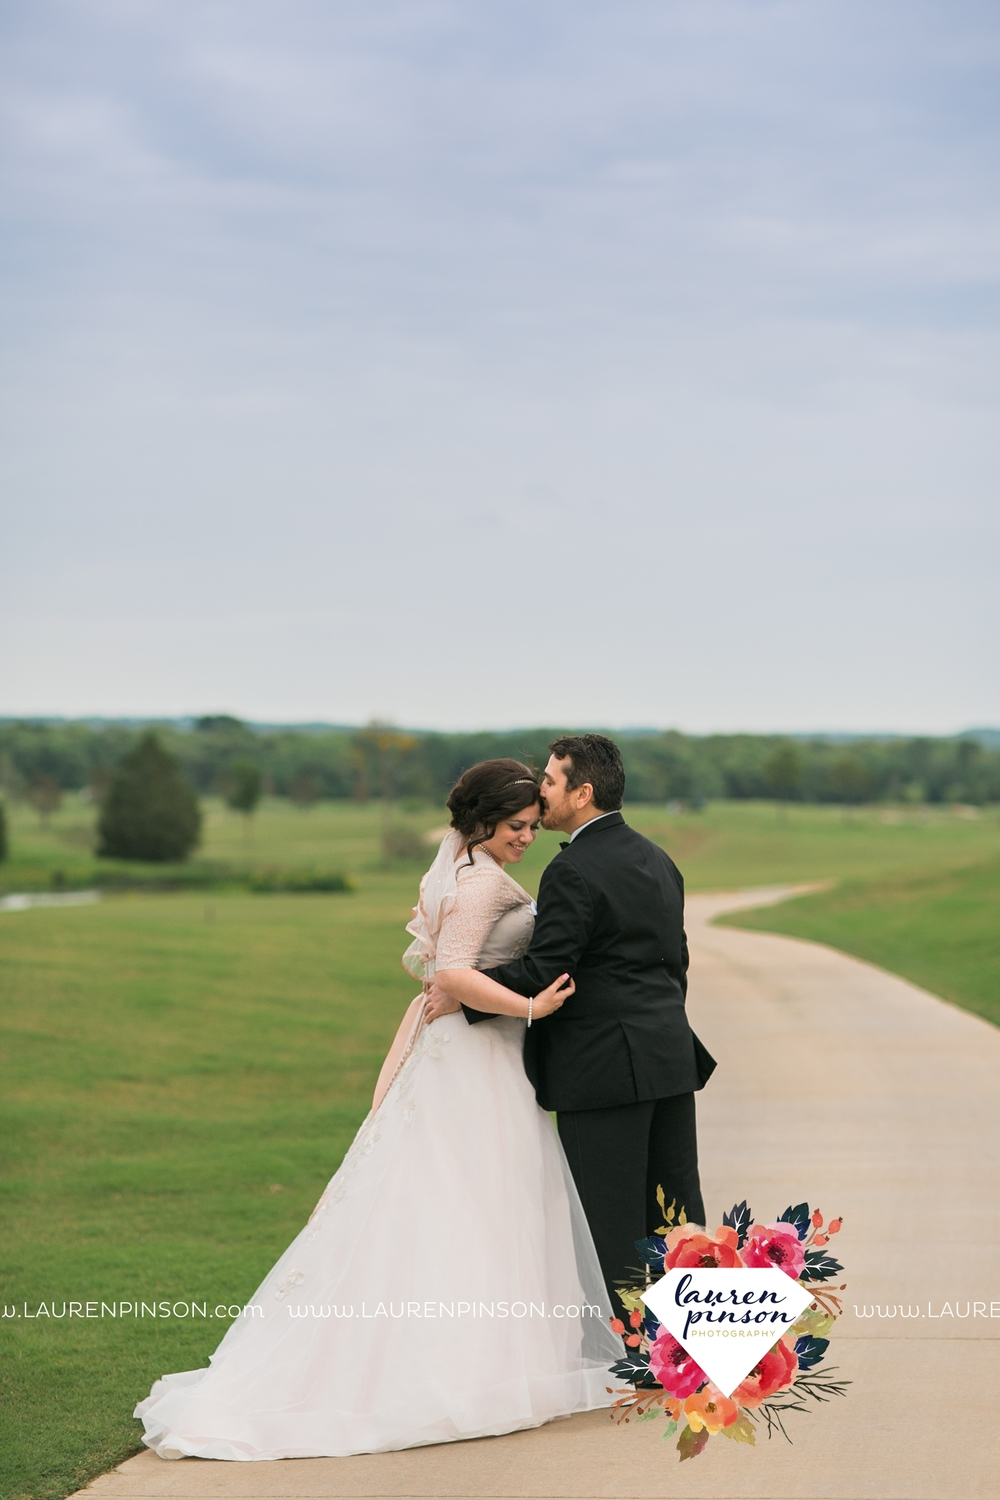 gainesville-texas-sherman-texas-thackerville-oklahoma-wedding-photographer-at-winstar-casino-golf-resort_2280.jpg